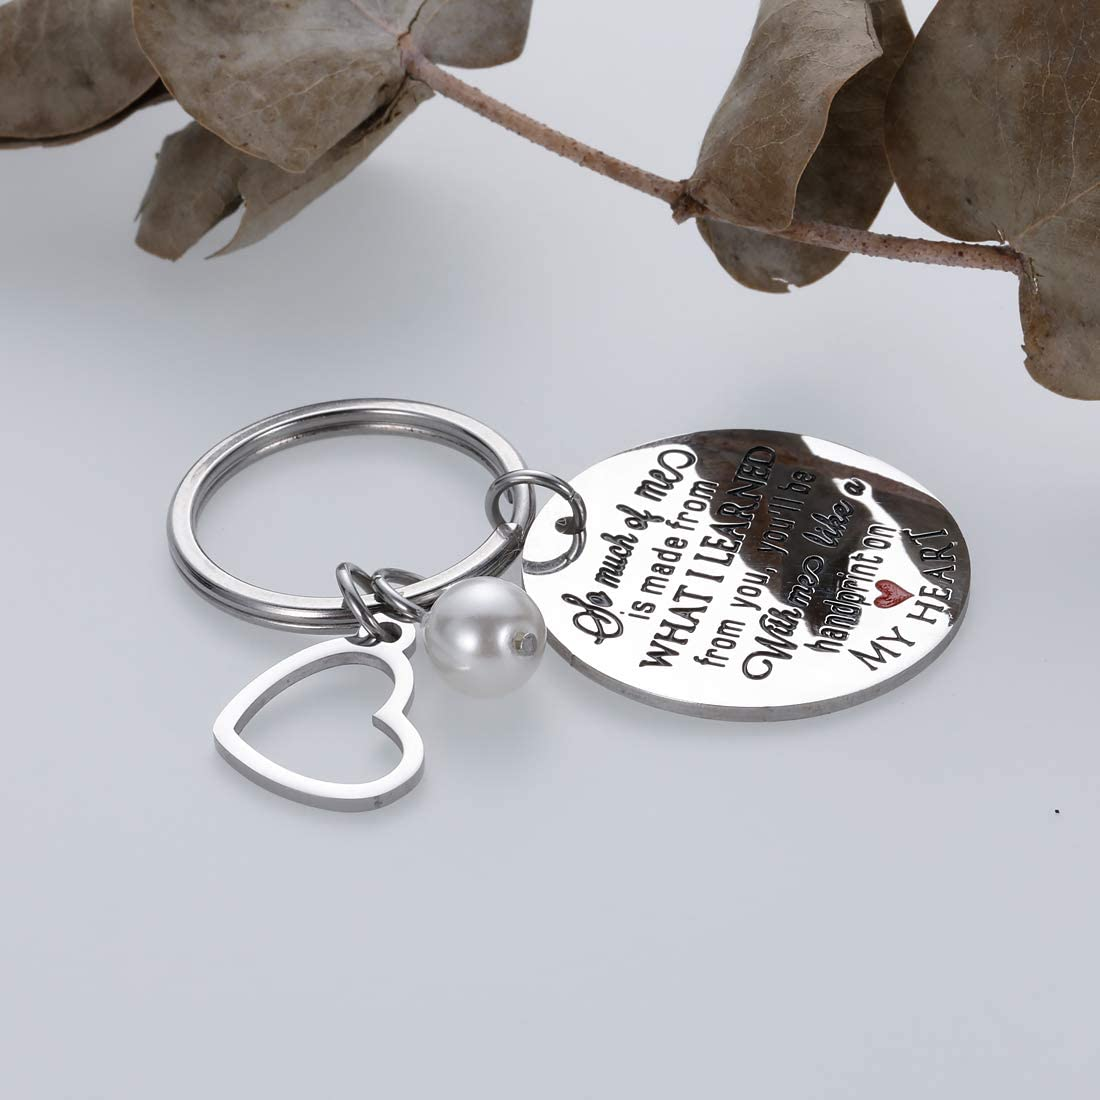 Teacher Appreciation Week Keychain Graduation Gifts For Teachers Mentor Thank You Gift For Mom Dad Godmother Birthday Christmas Thanksgiving Keyring Gifts From Students Son Daughter